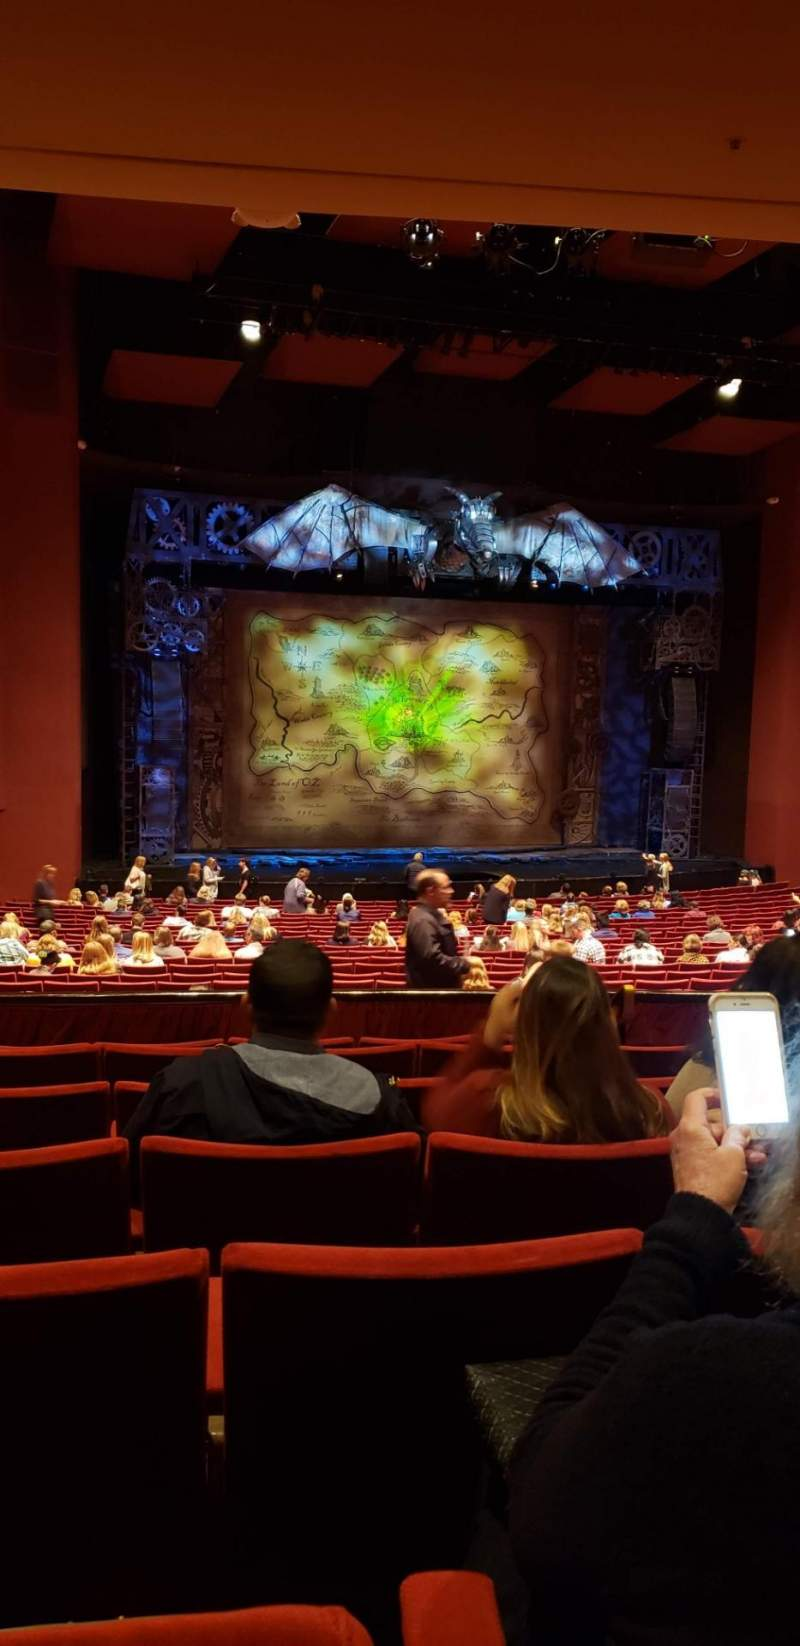 Seating view for San Diego Civic Theatre Section DRESL4 Row G Seat 37